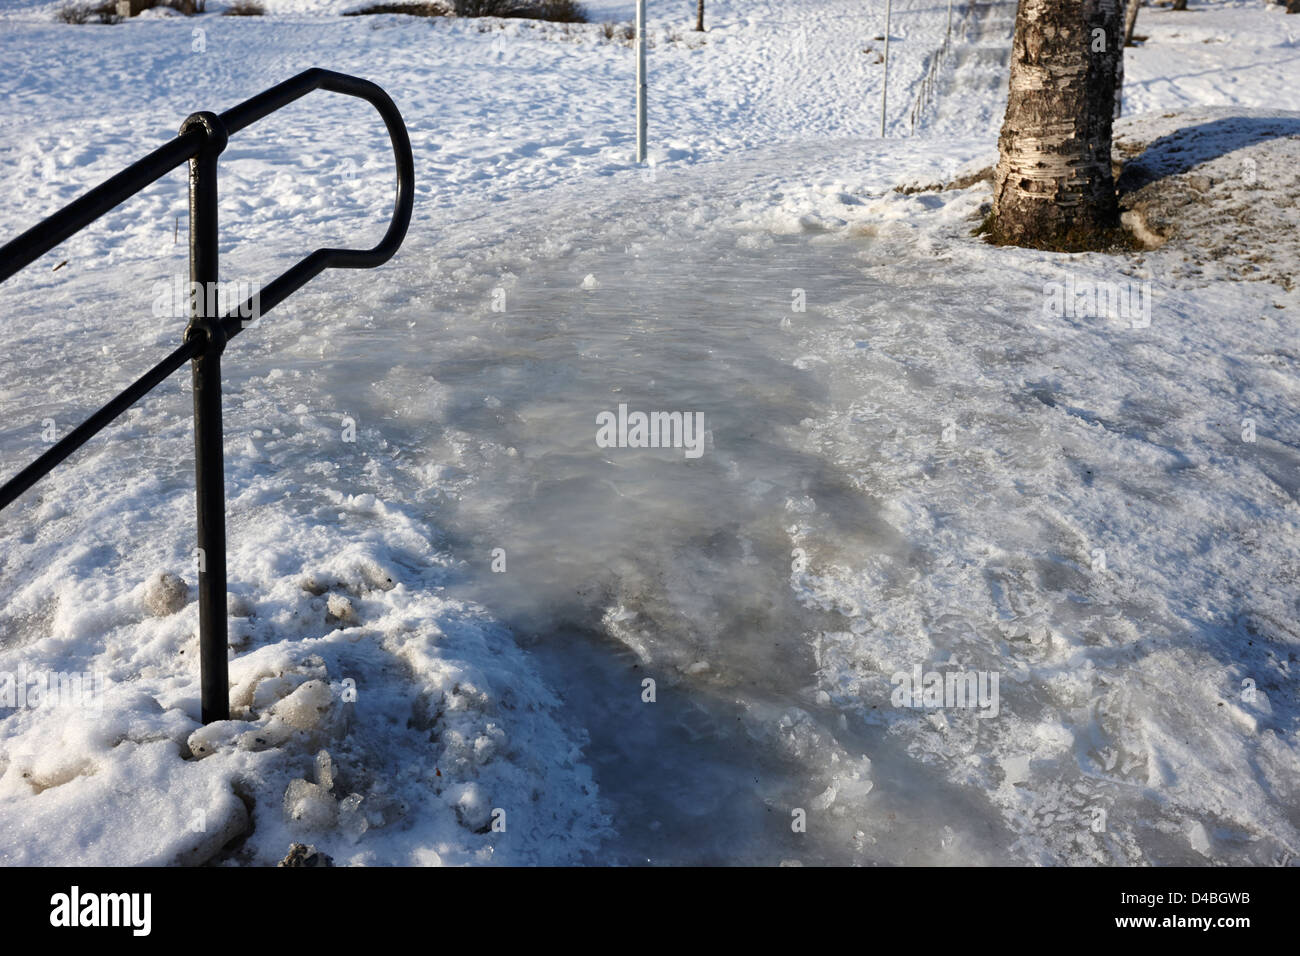 thick ice forming at the top of steps on a hill Tromso troms Norway europe - Stock Image